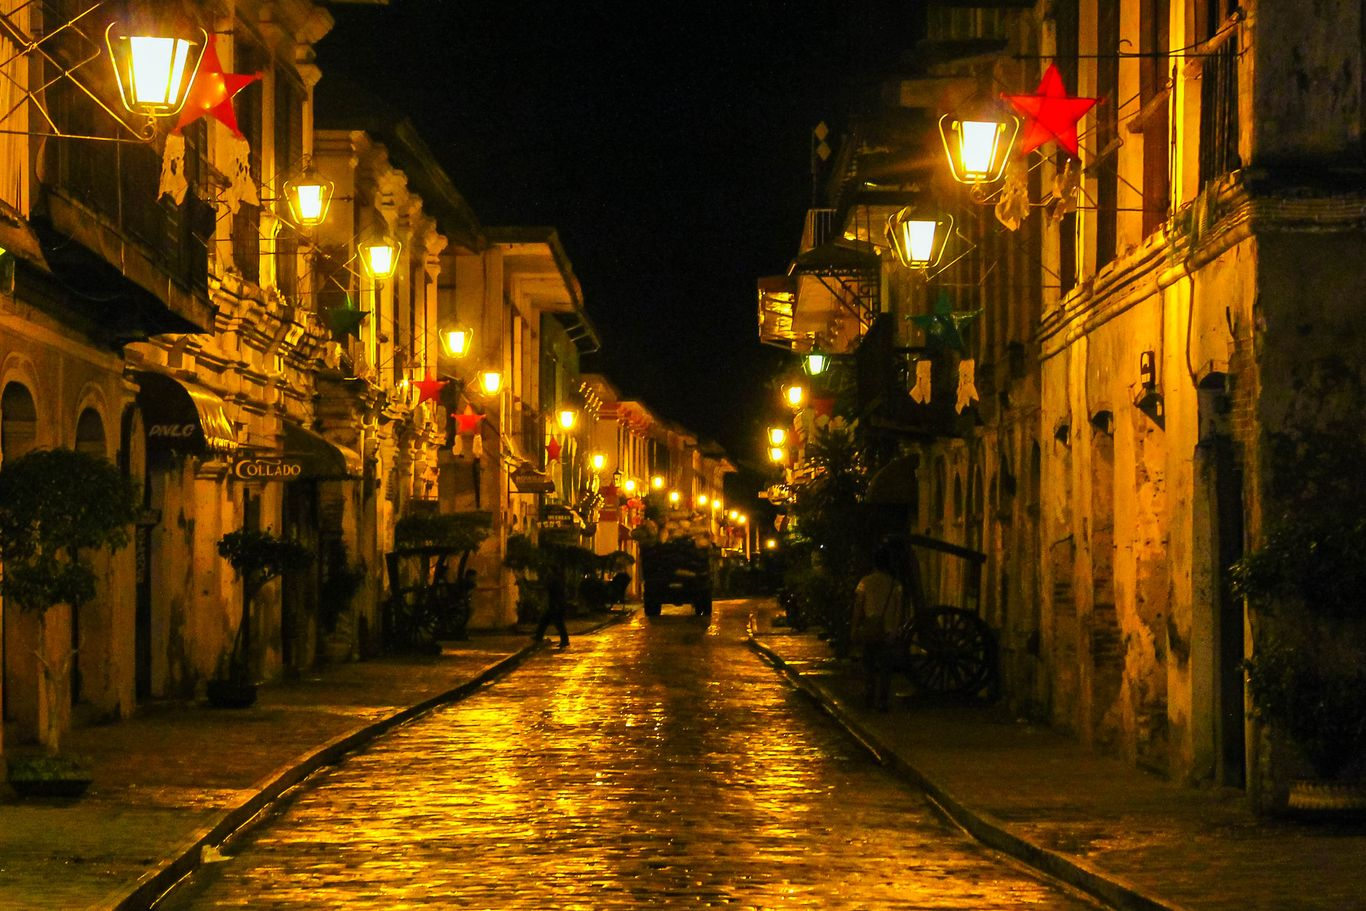 At night, a horse-drawn carriage moves along a cobblestone street lined on either side by old stone houses, upon which are hung lit lampposts